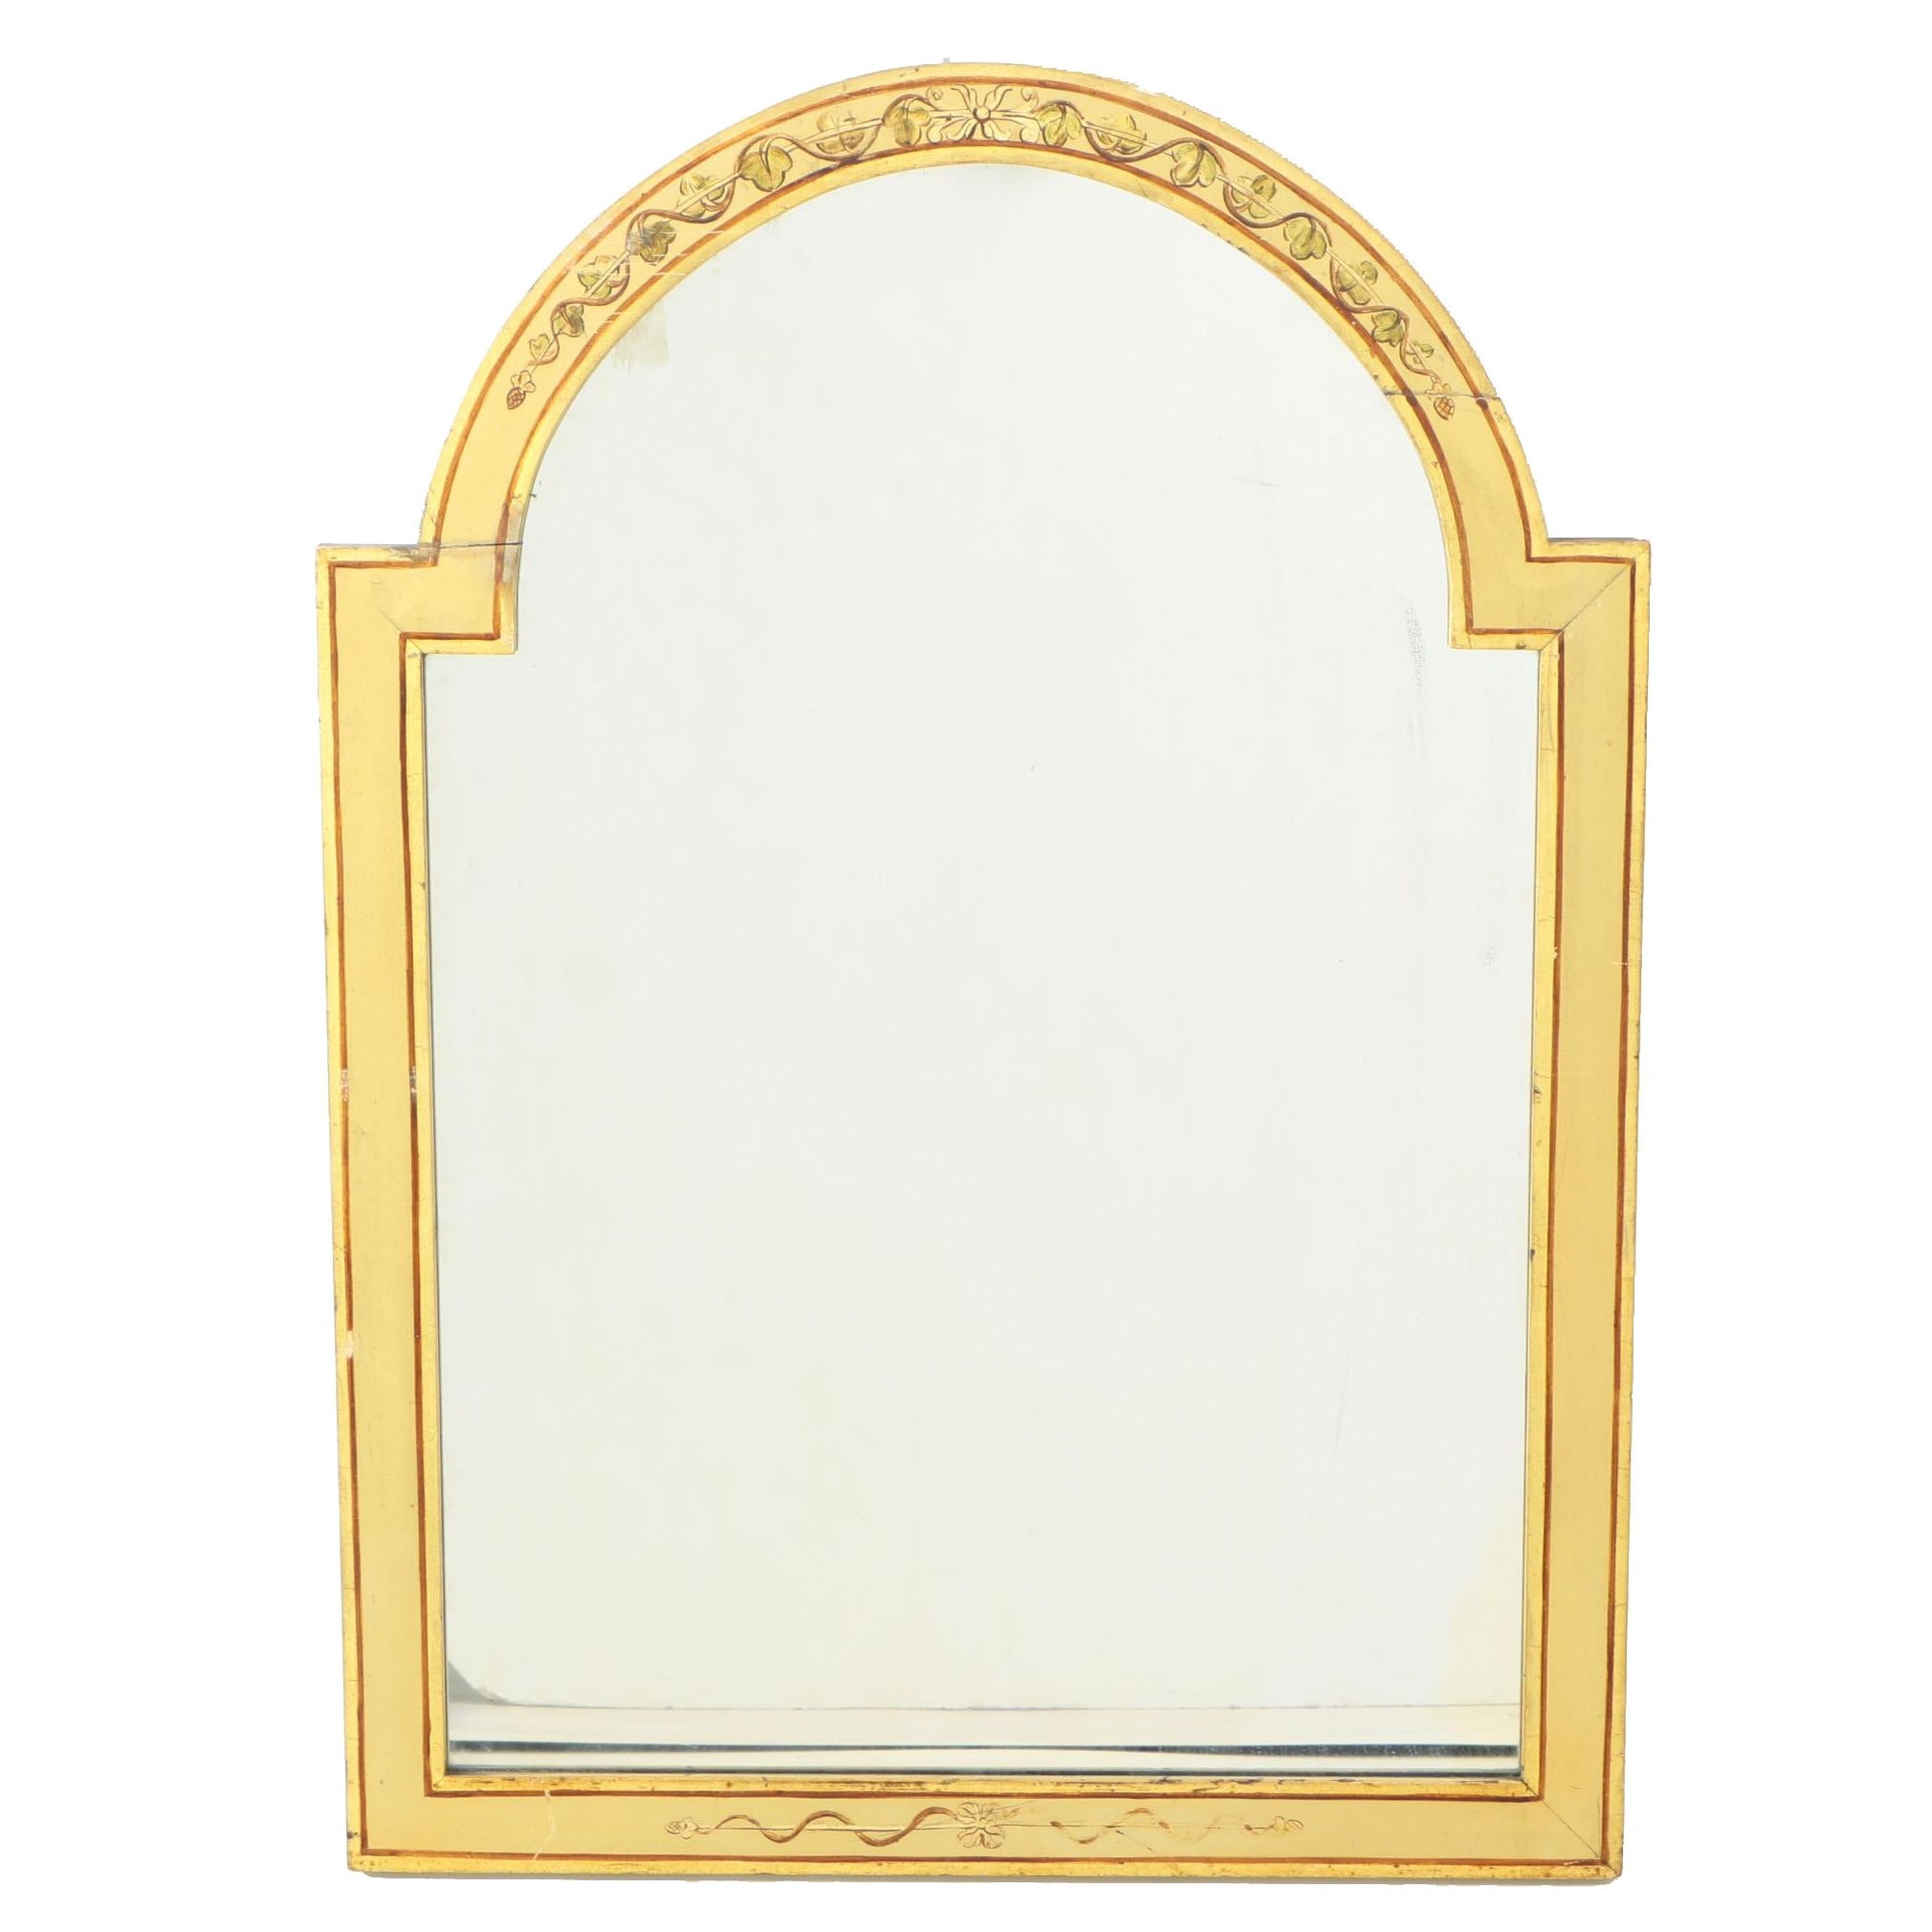 Paint-Decorated Mirror, First Half 20th Century